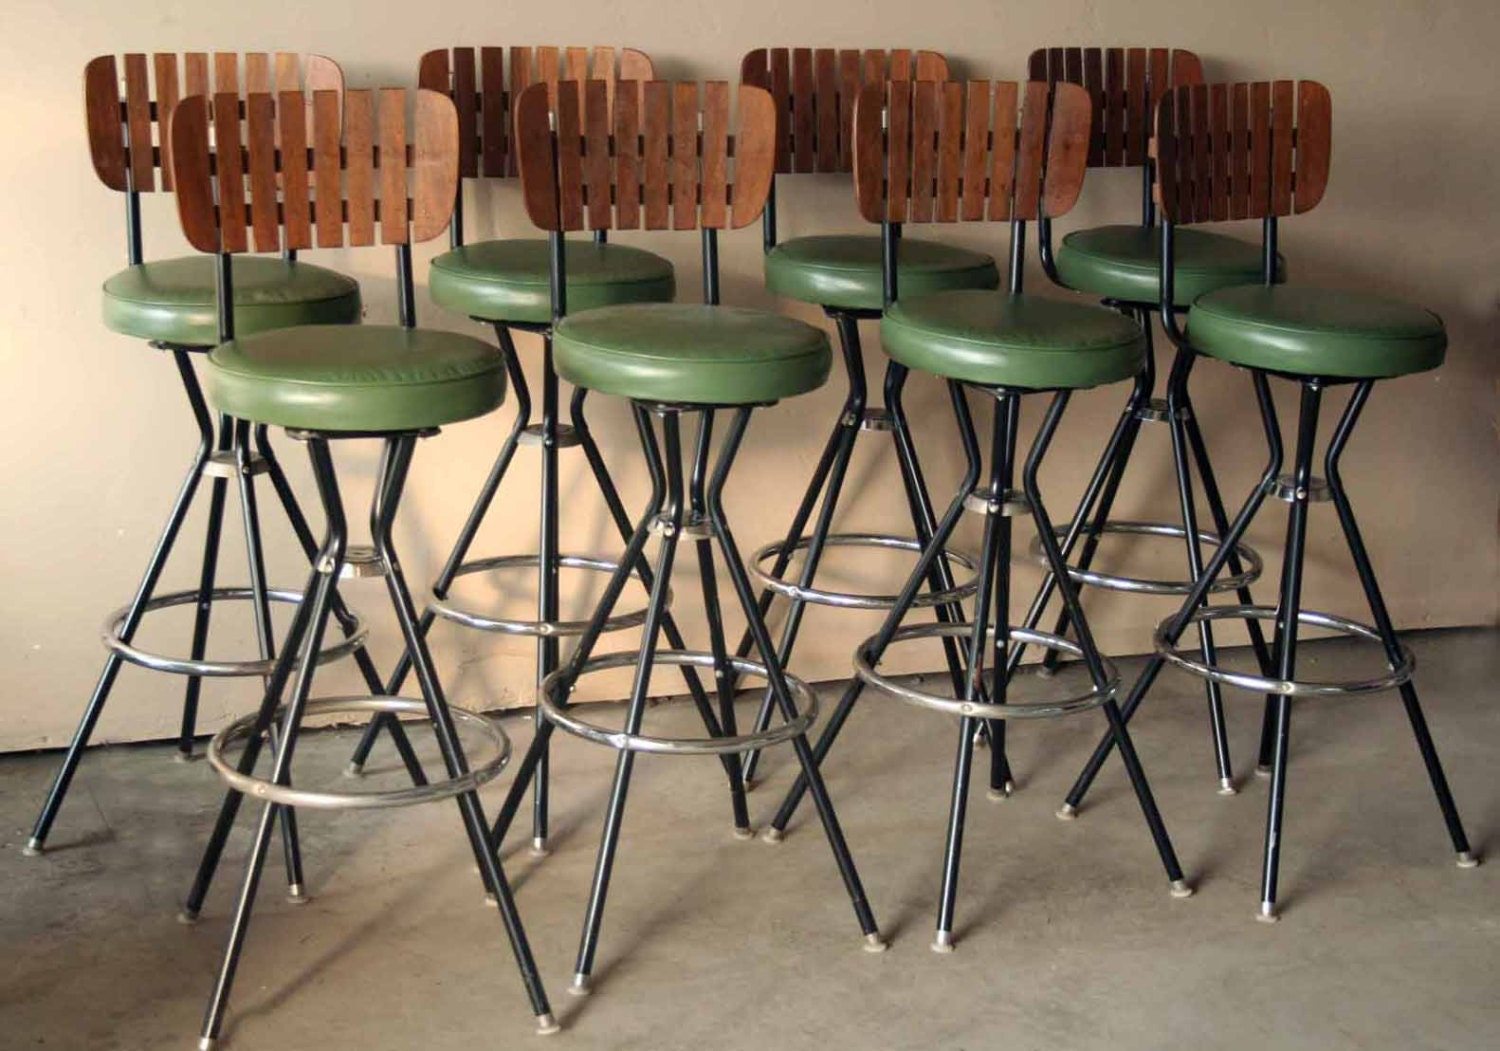 Retro Kitchen Bar Stools Retro Green And Wooden Bar Stool Slat Back Mid Century